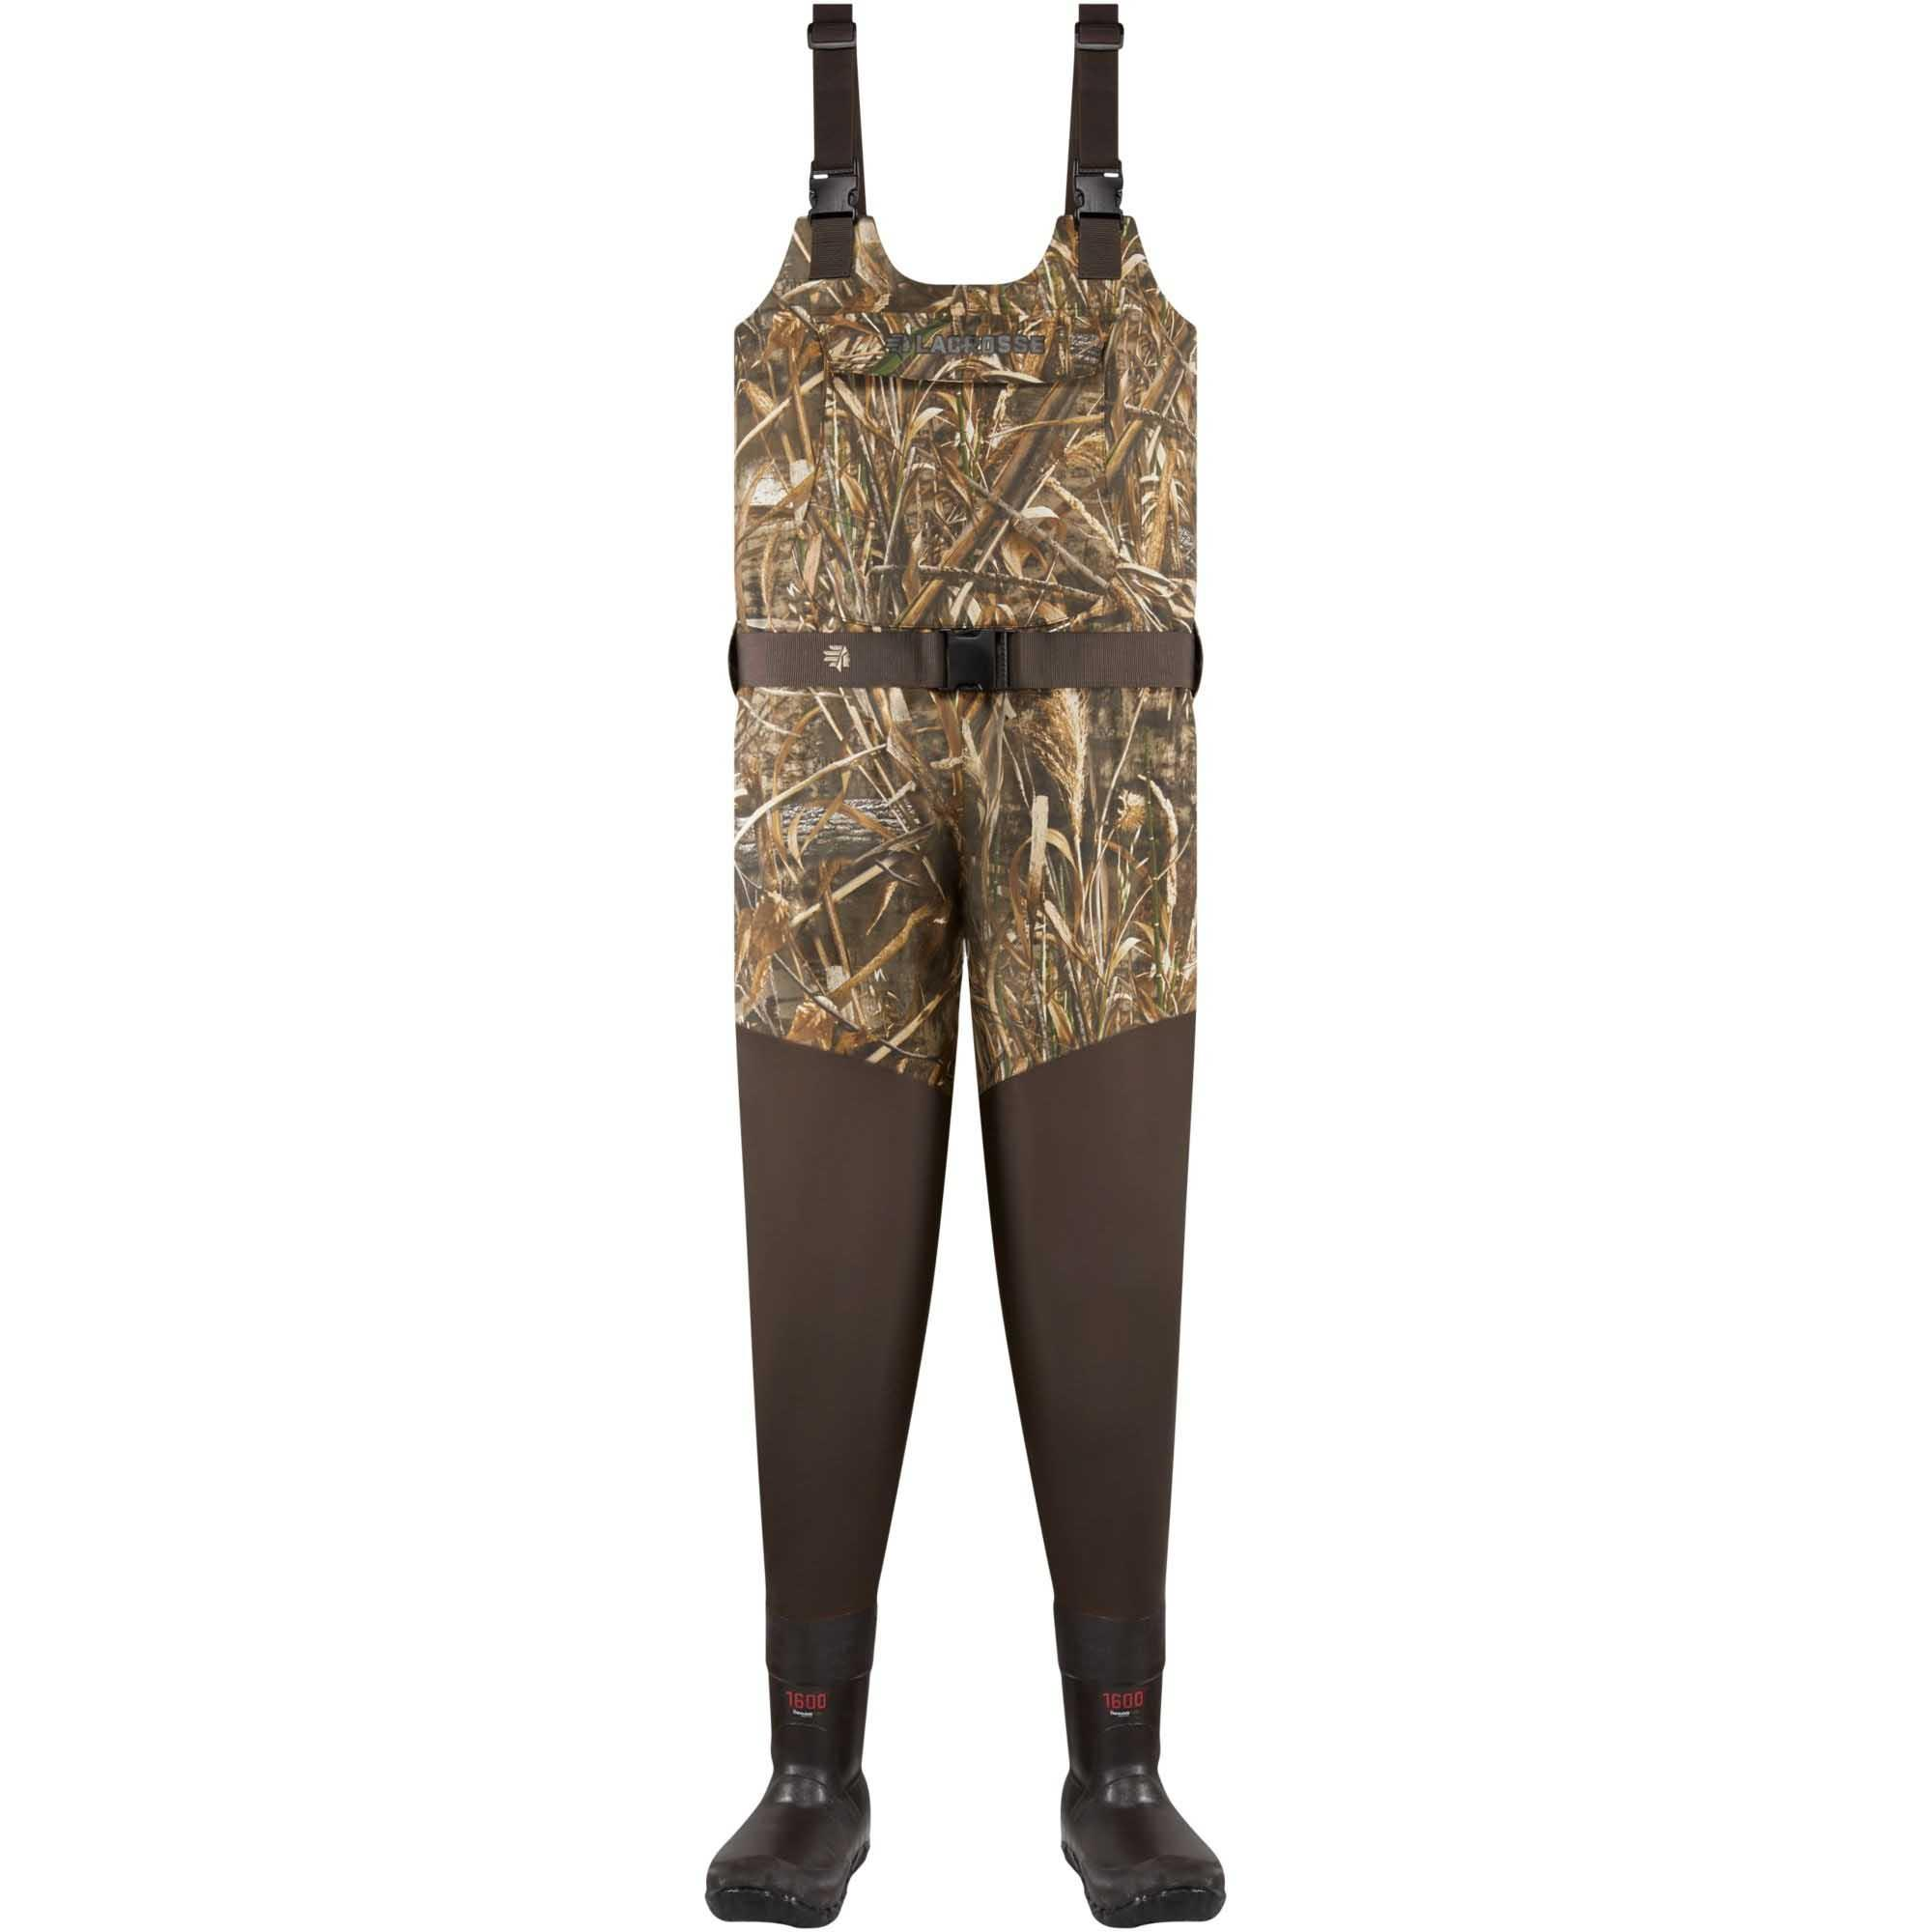 LaCrosse Wetlands Waders 1600G, Max 5 - Stout Sizes_1.jpg